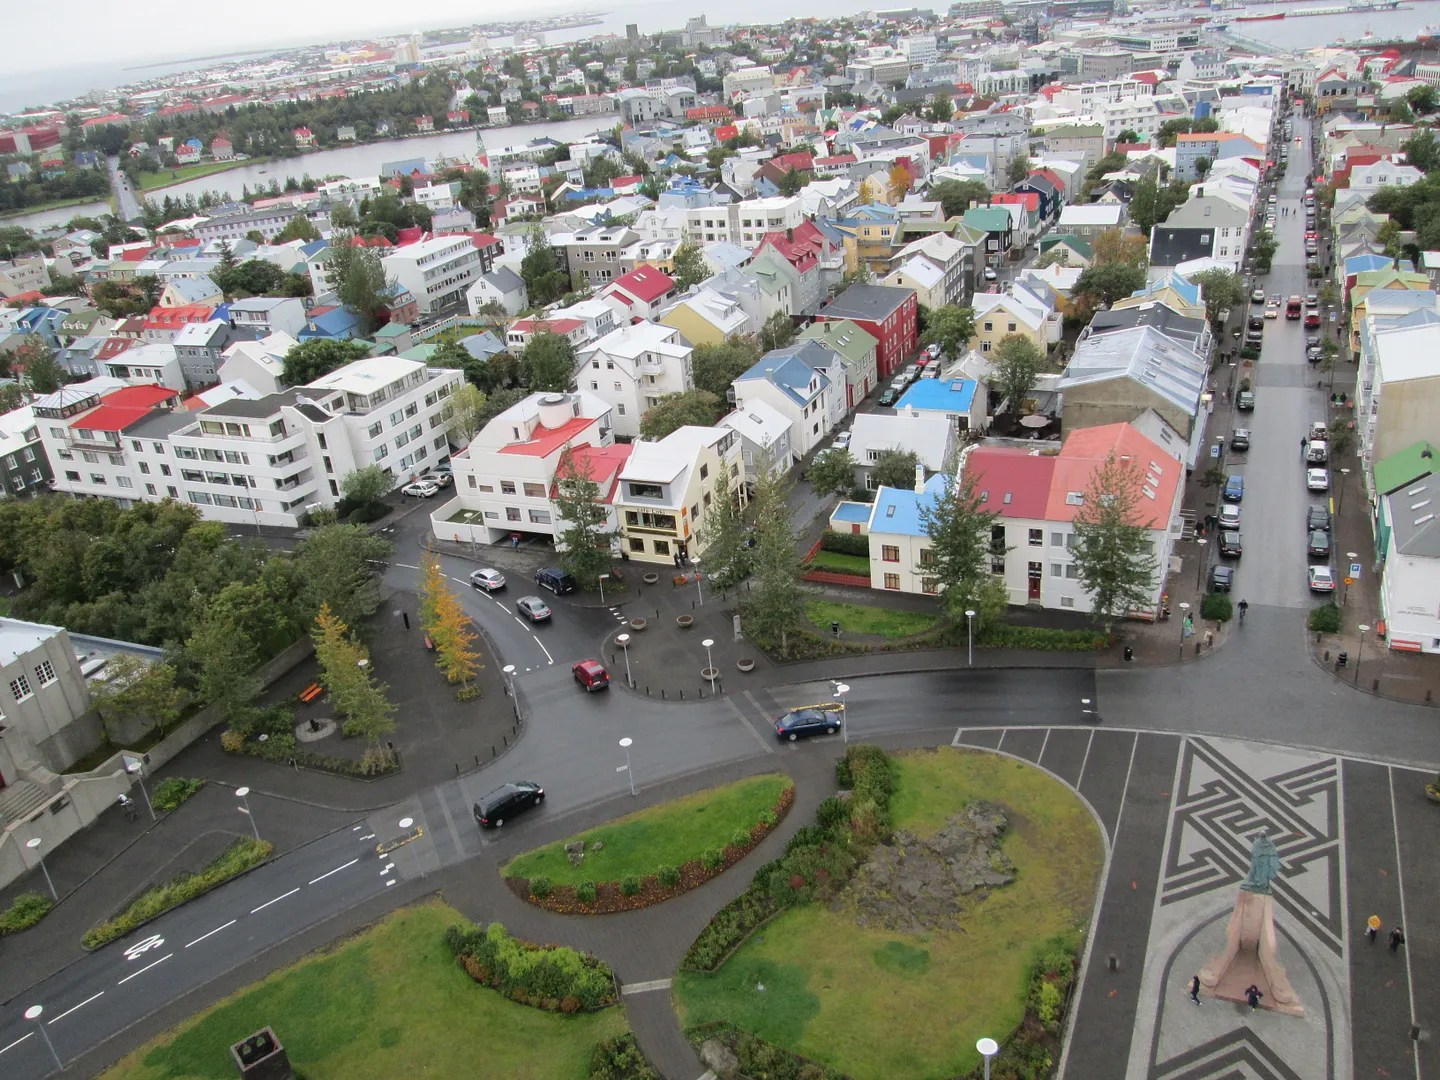 view of reykjavik from tower